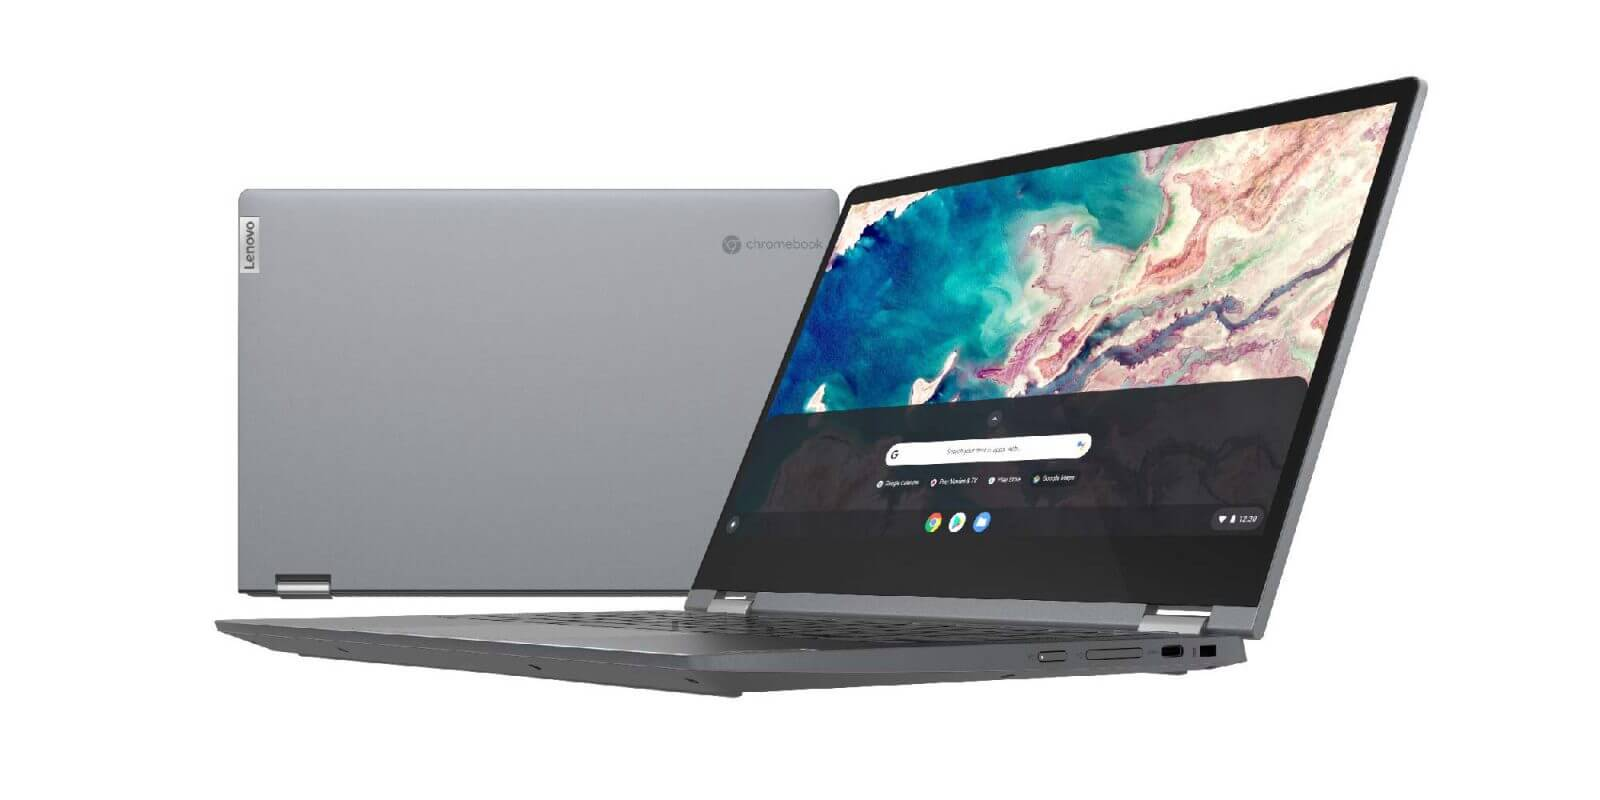 IdeaPad Flex 5 Chromebook